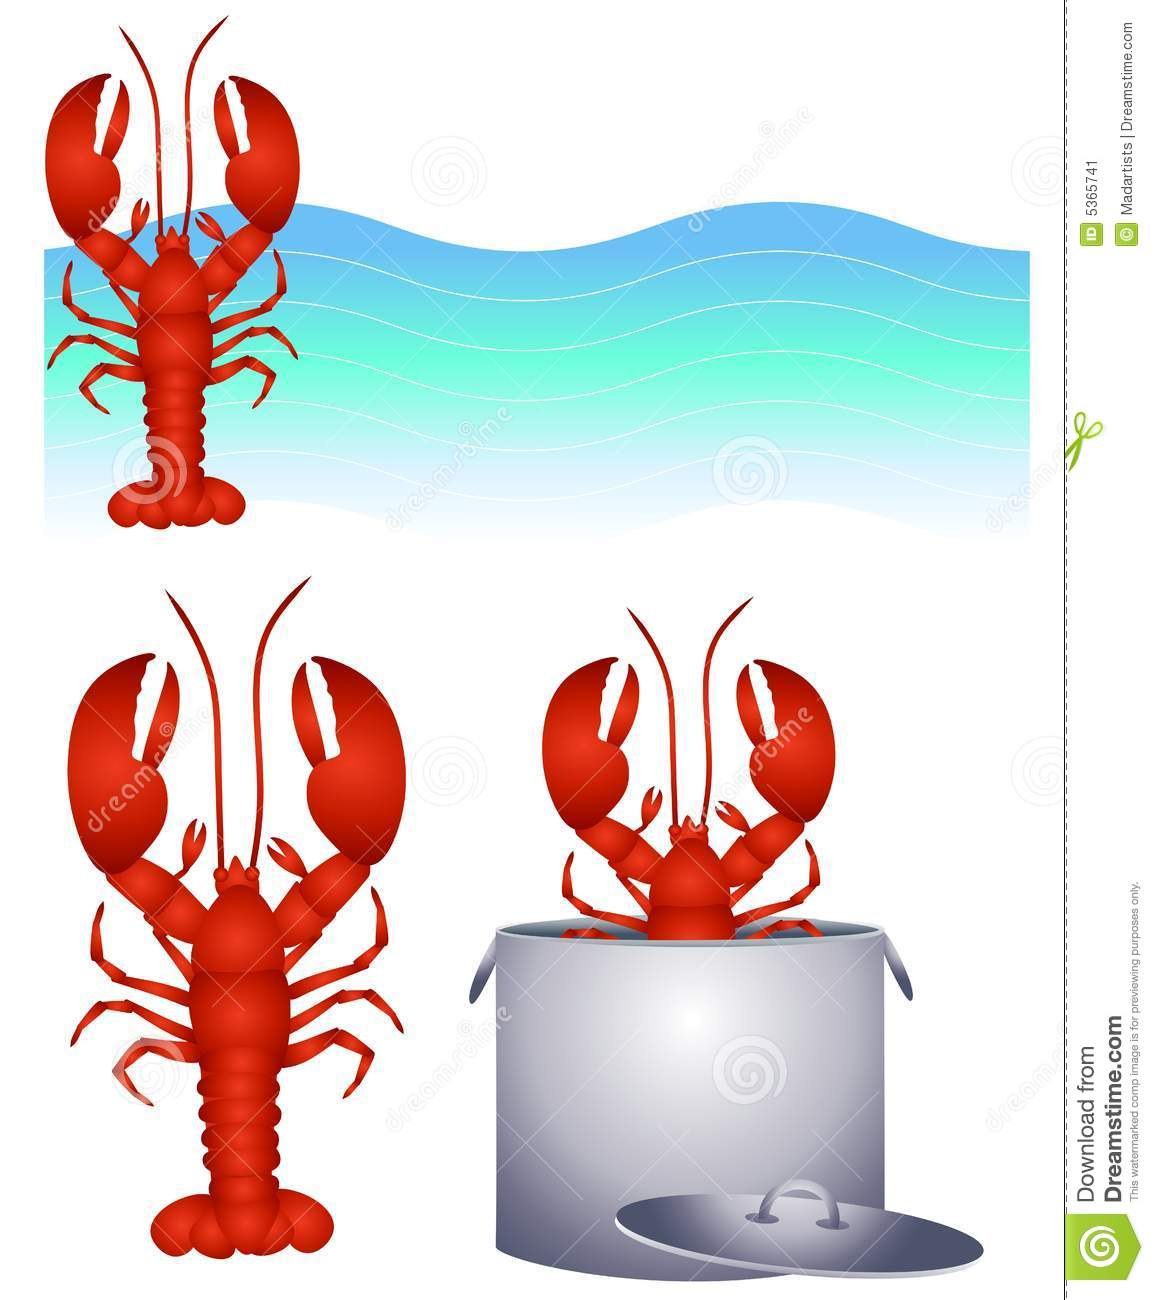 Red lobster clip art and logo stock image image 5365741